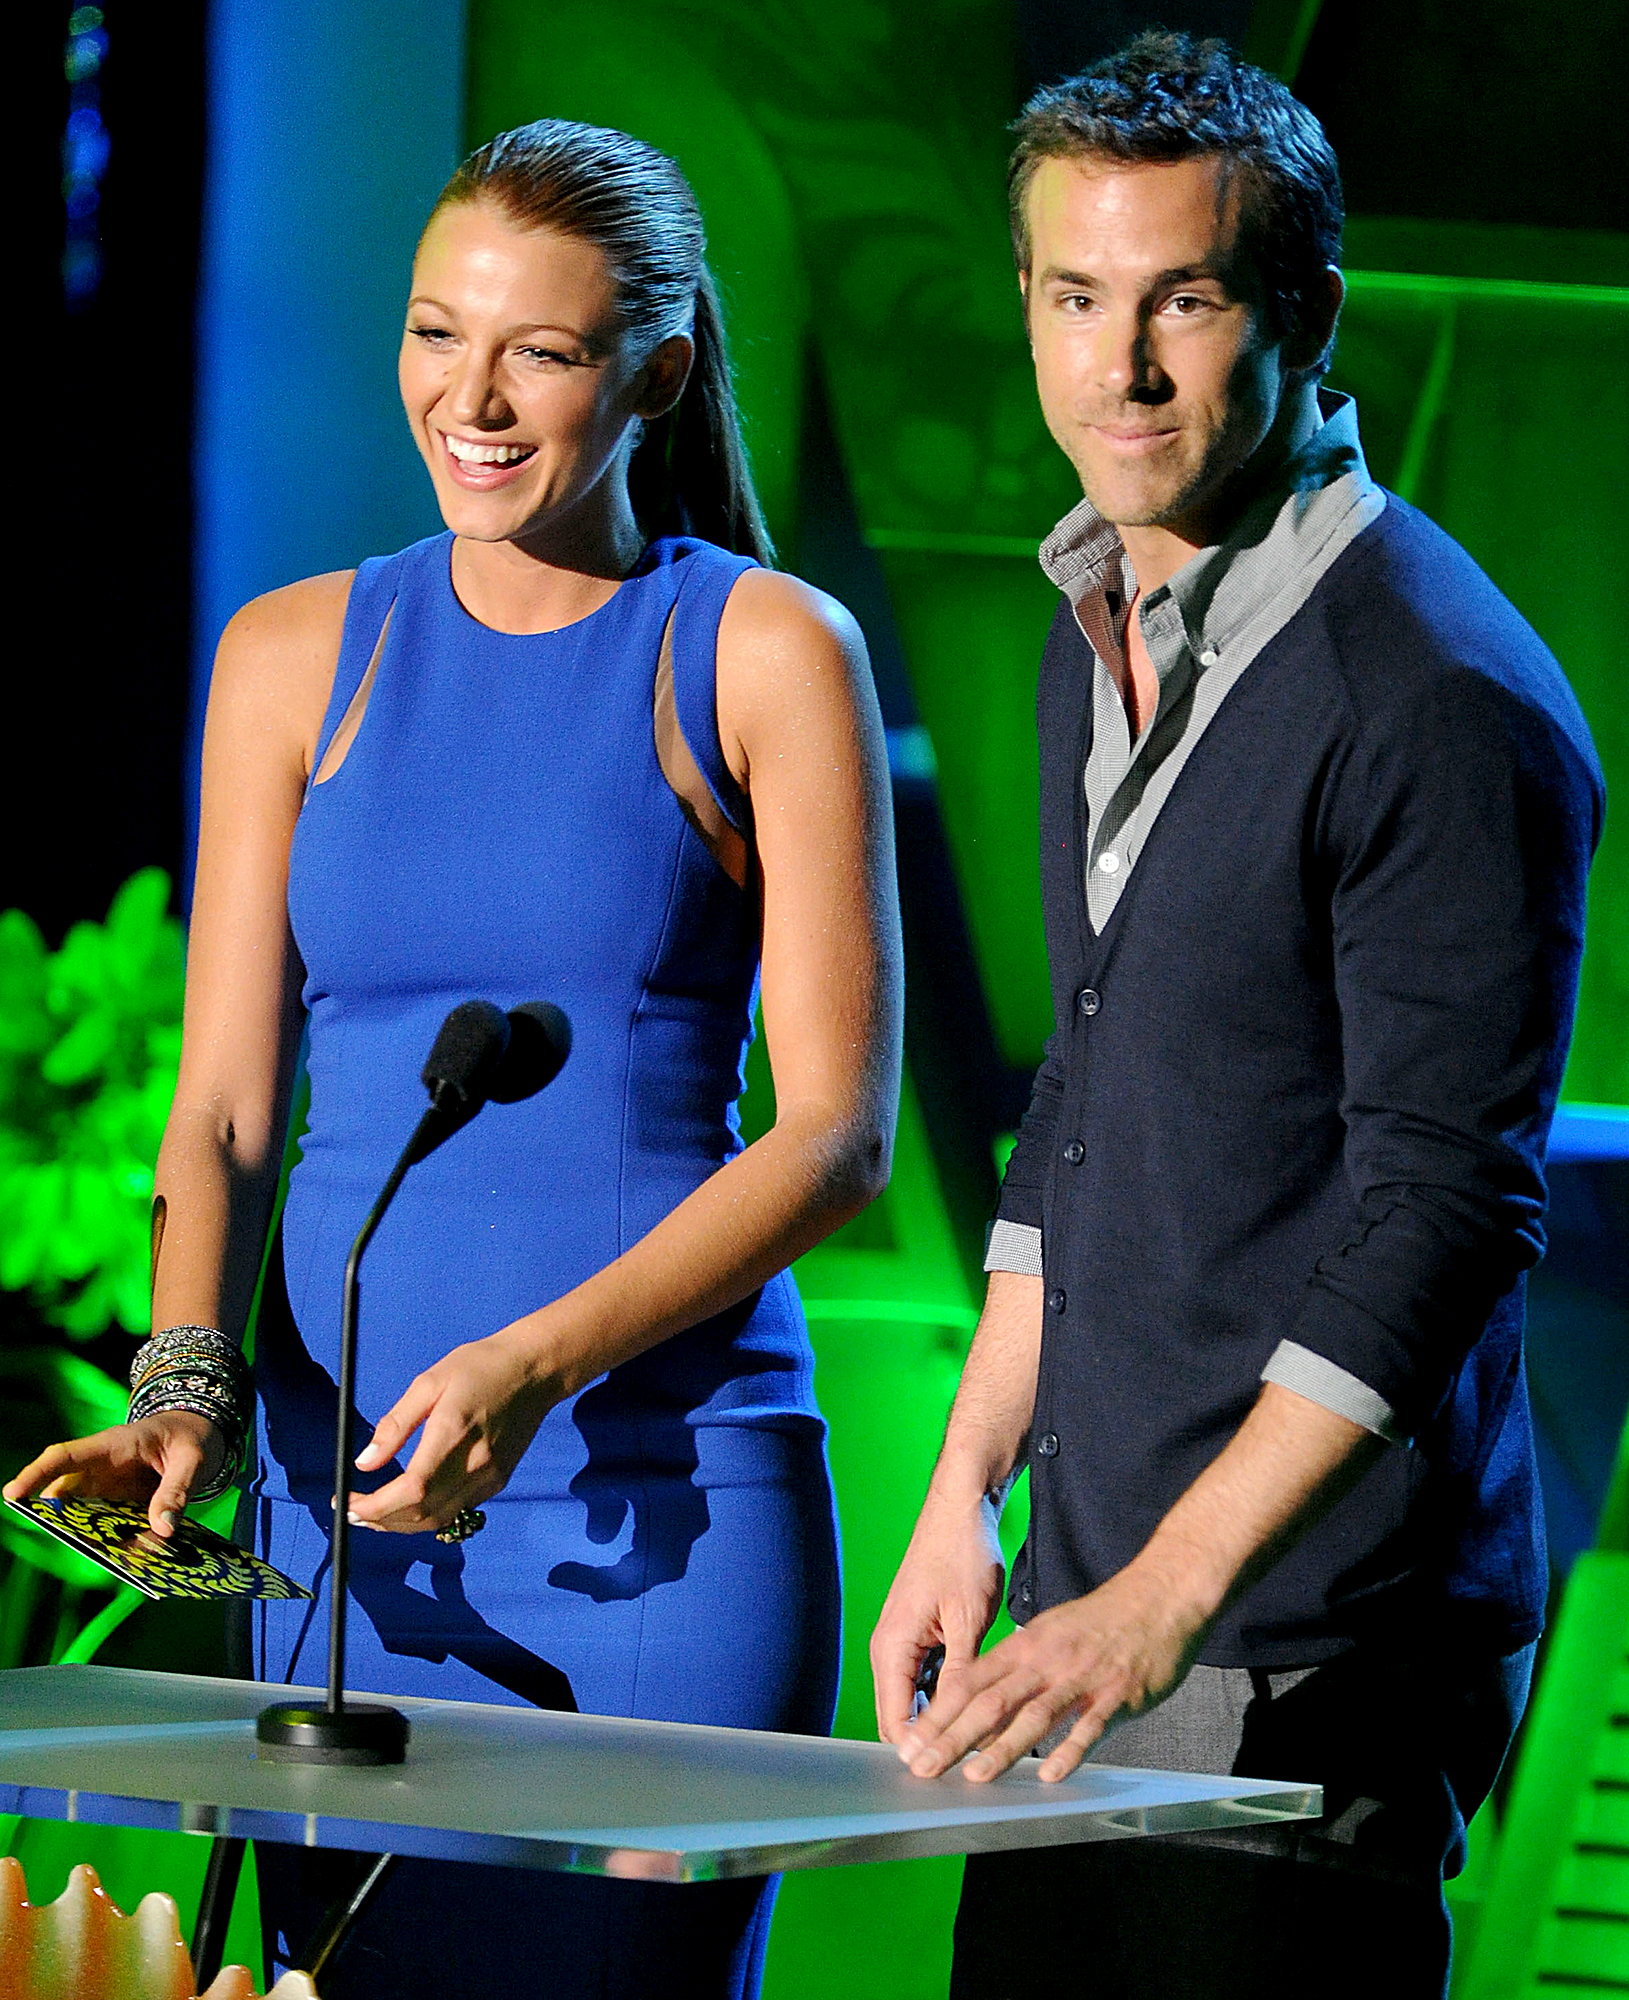 Blake-Lively-Ryan-Reynolds-June-5,-2011 - The stars spoke onstage at the 2011 MTV Movie Awards at the Gibson Amphitheater in Universal City, California. The actress was dating Leonardo DiCaprio at the time.